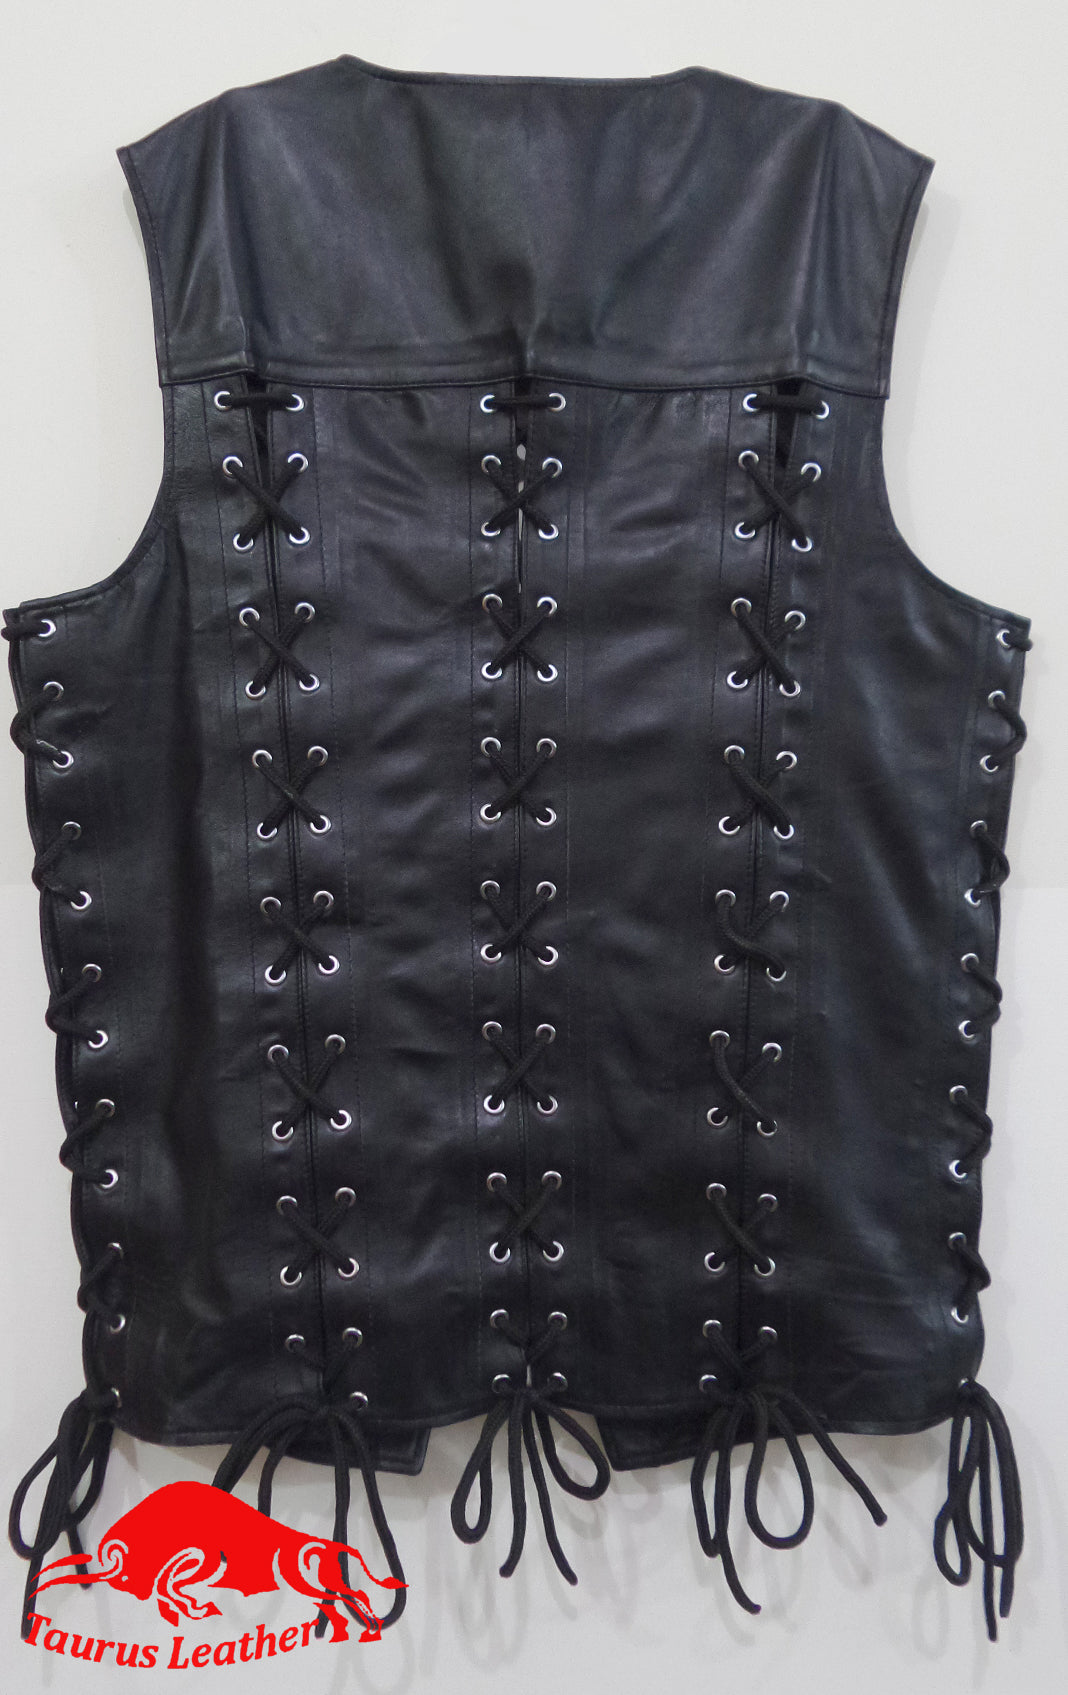 TAURUS LEATHER Back Sheep Leather Lacing Vest